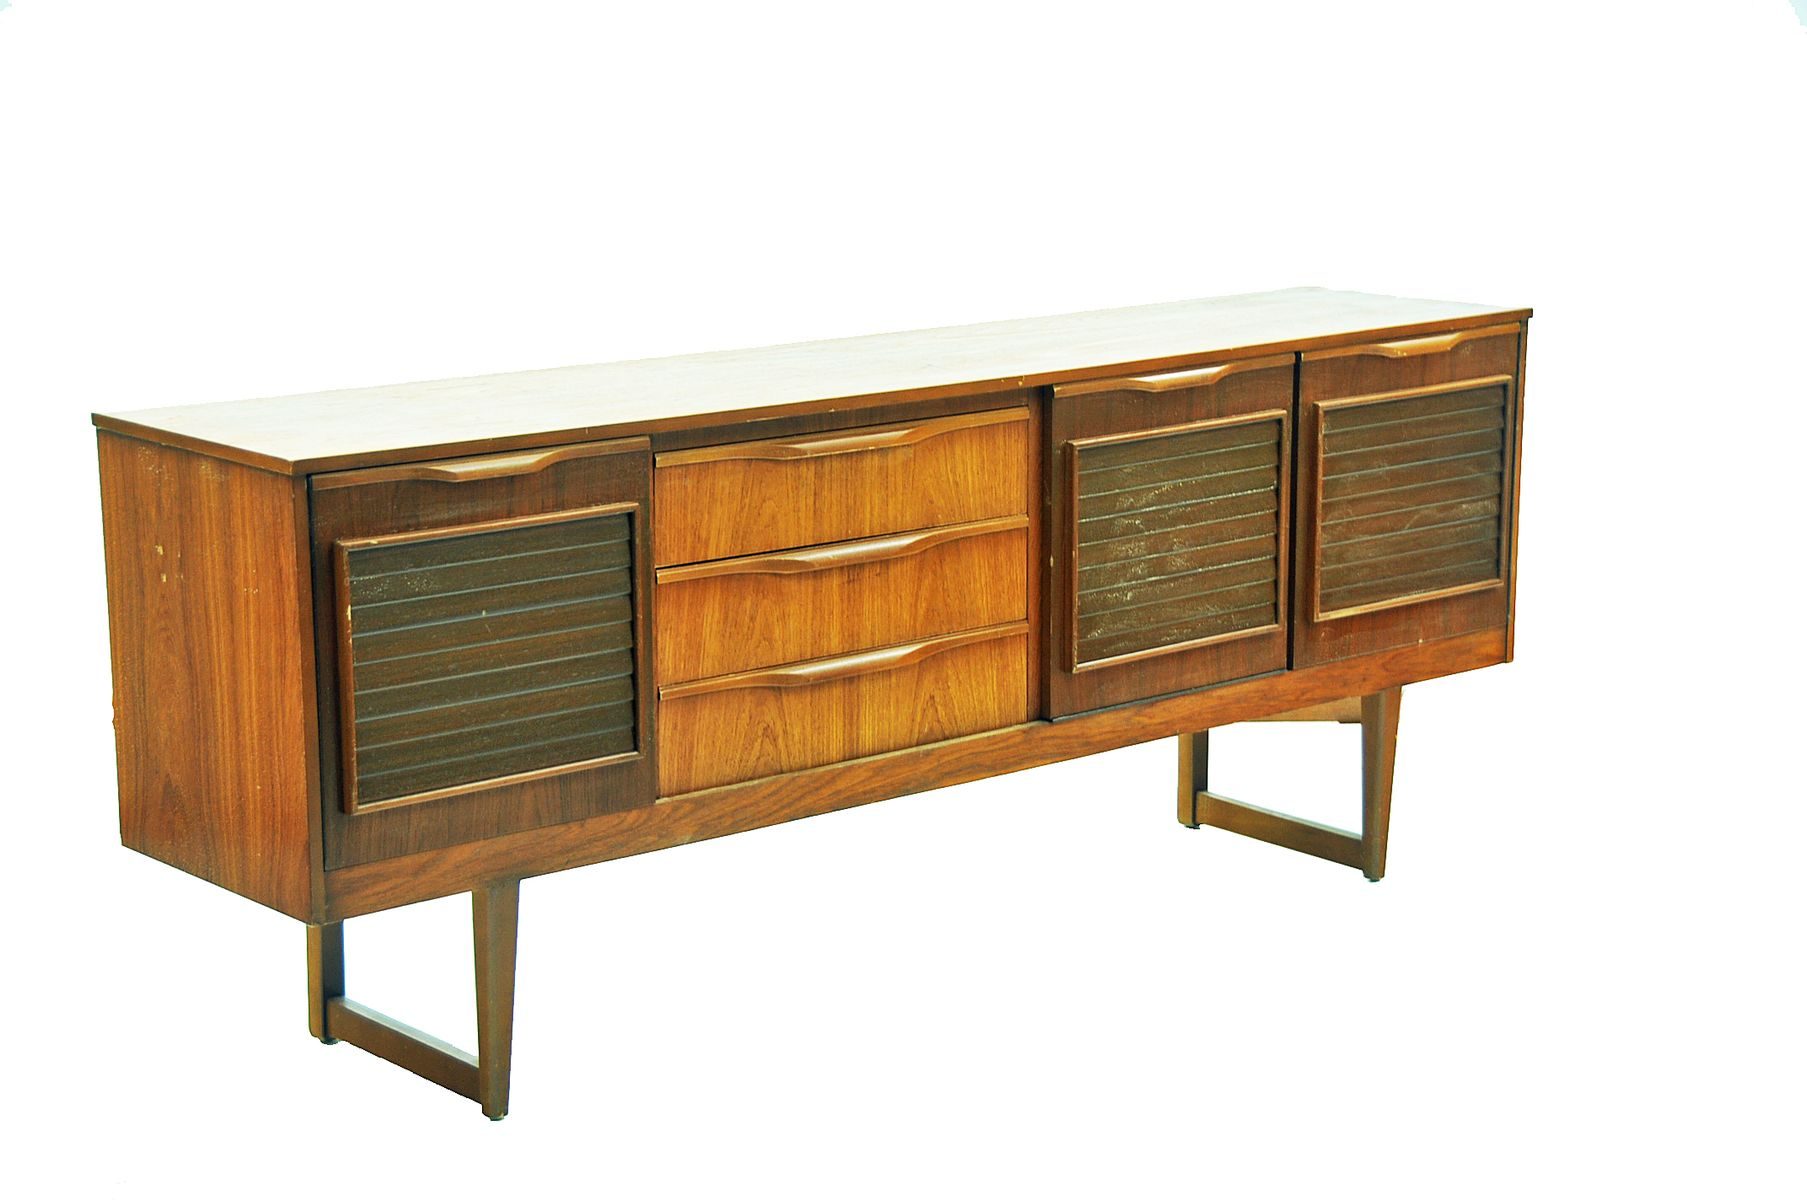 Bicolored oak sideboard 1960s for sale at pamono for Sideboard 2 50 m